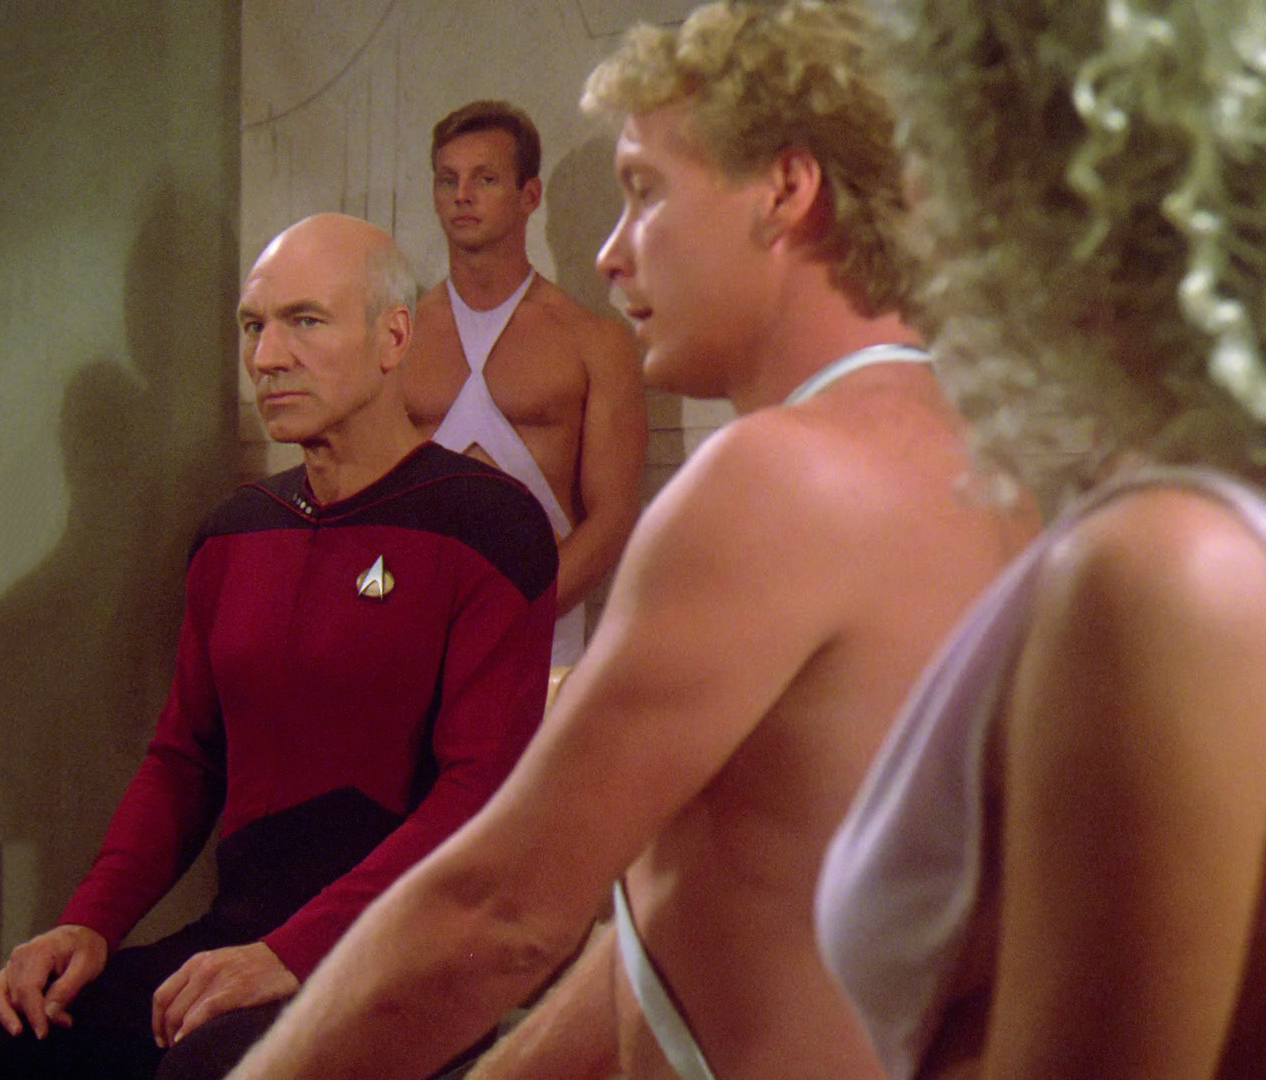 picard_negotiates_for_wesley_s_life.jpg